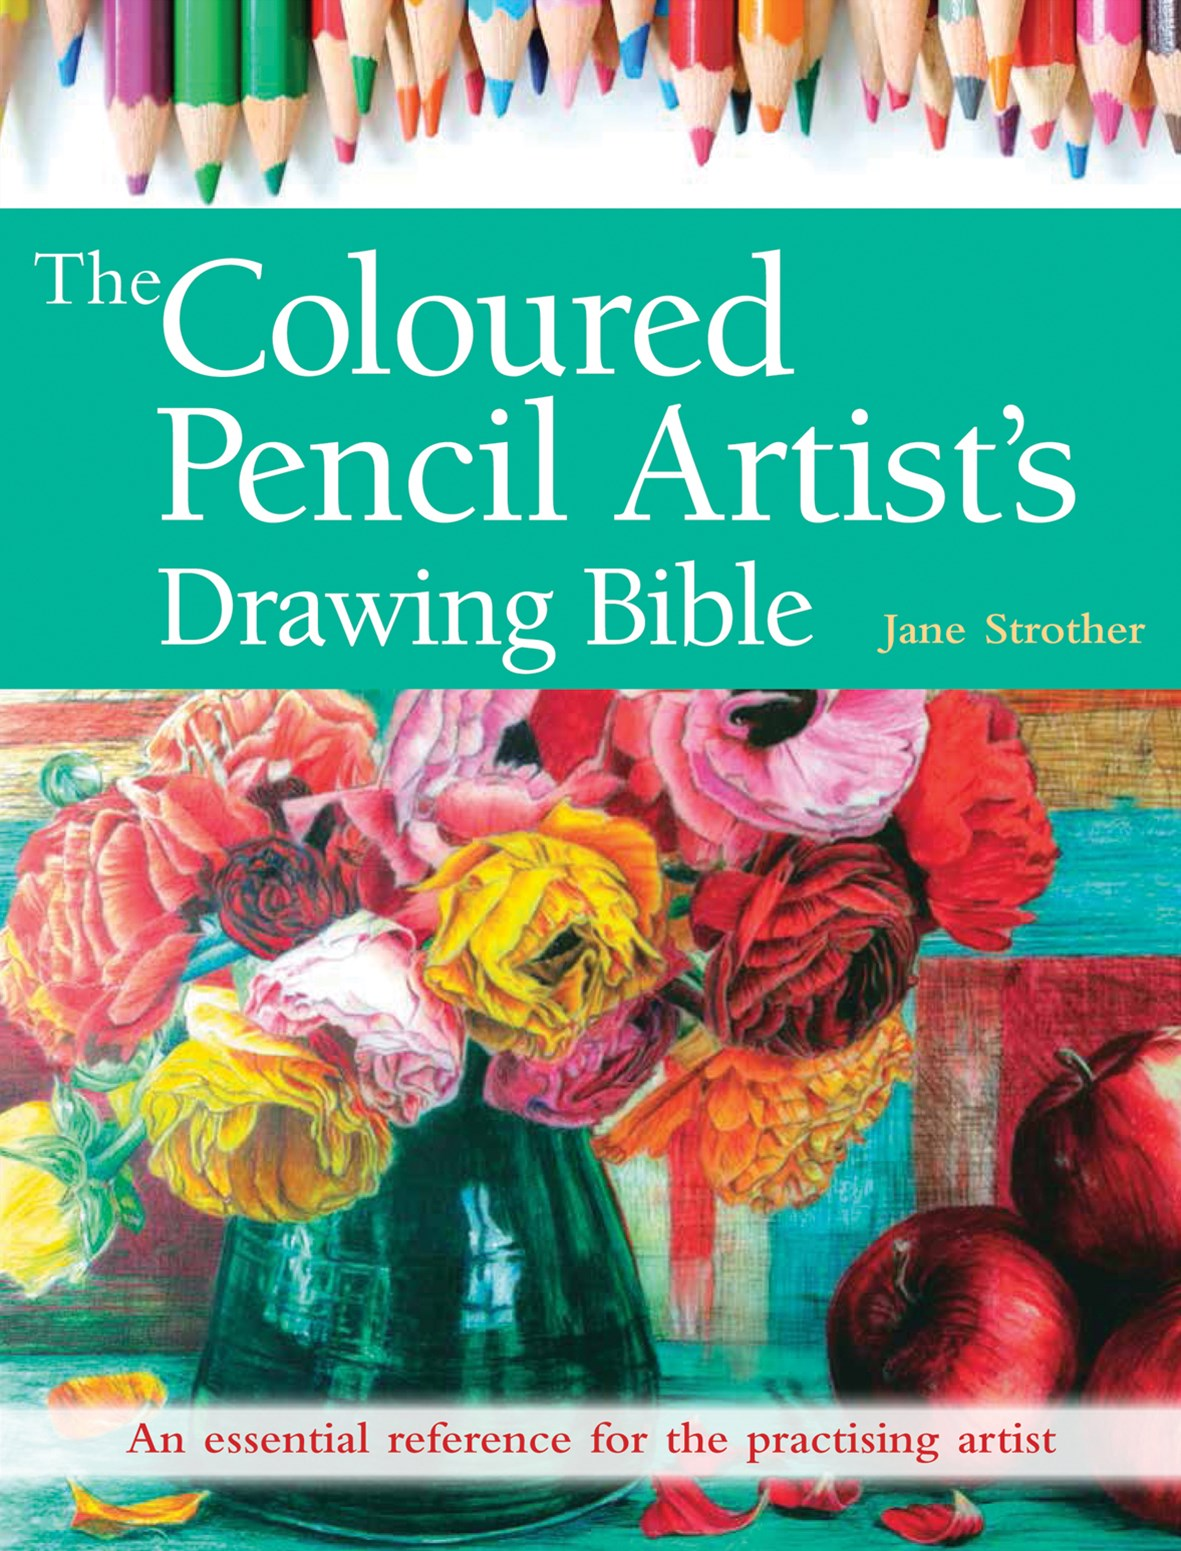 Coloured Pencil Artist's Drawing Bible